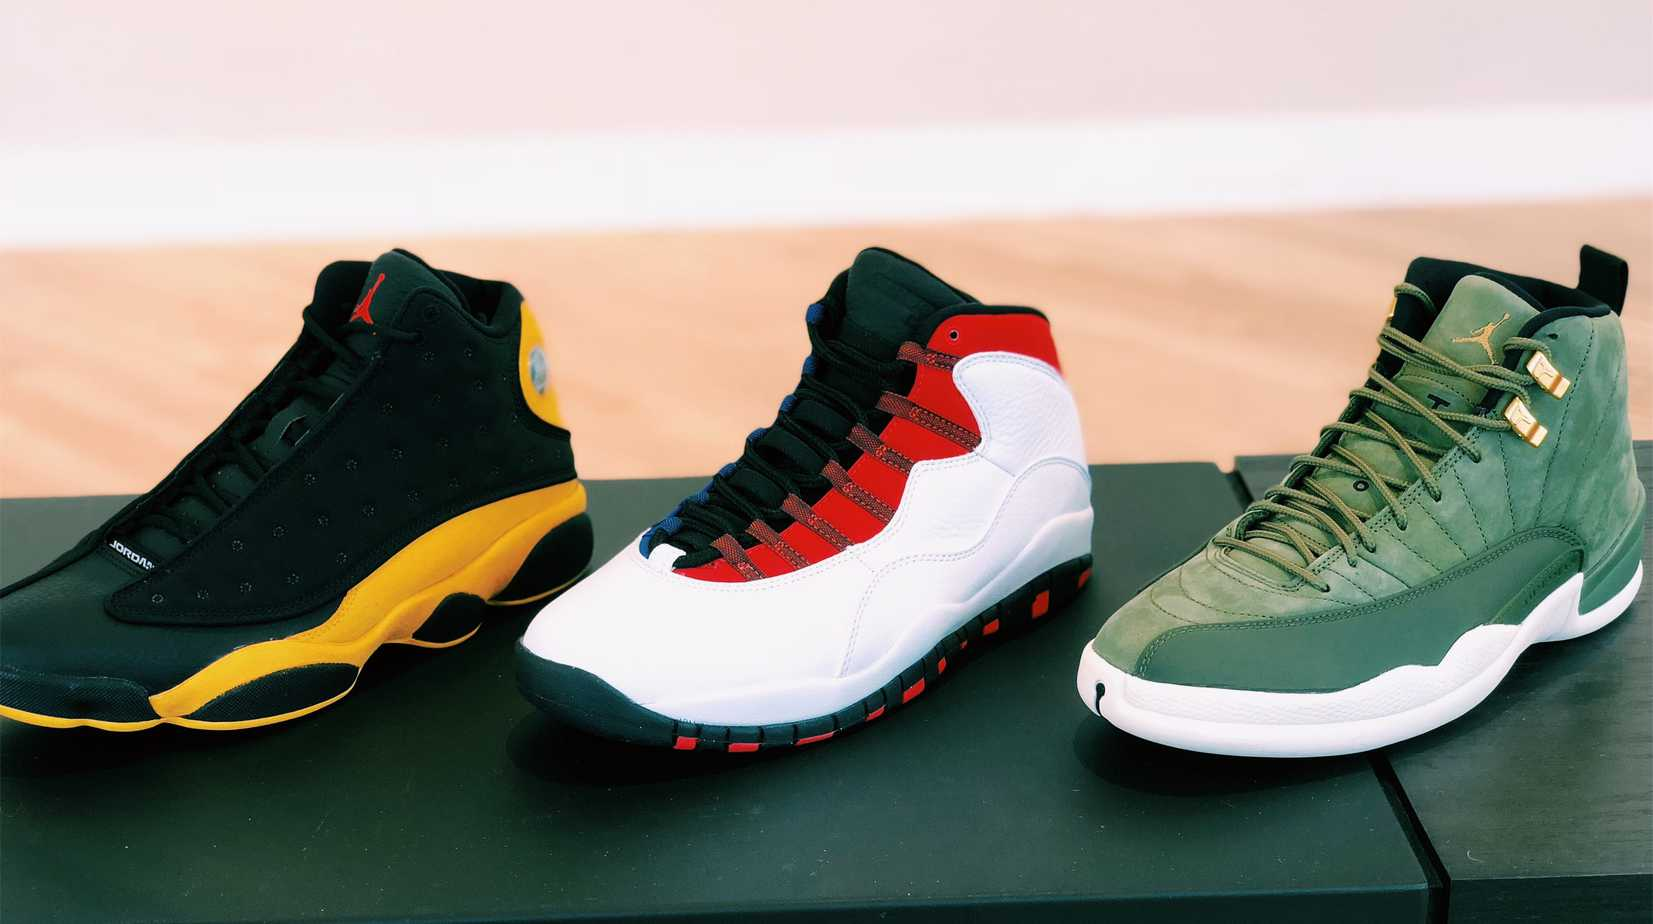 4b8b307686cf Jordan Brand has officially unveiled their release lineup for the rest of  the year. While it included a few things we ve seen